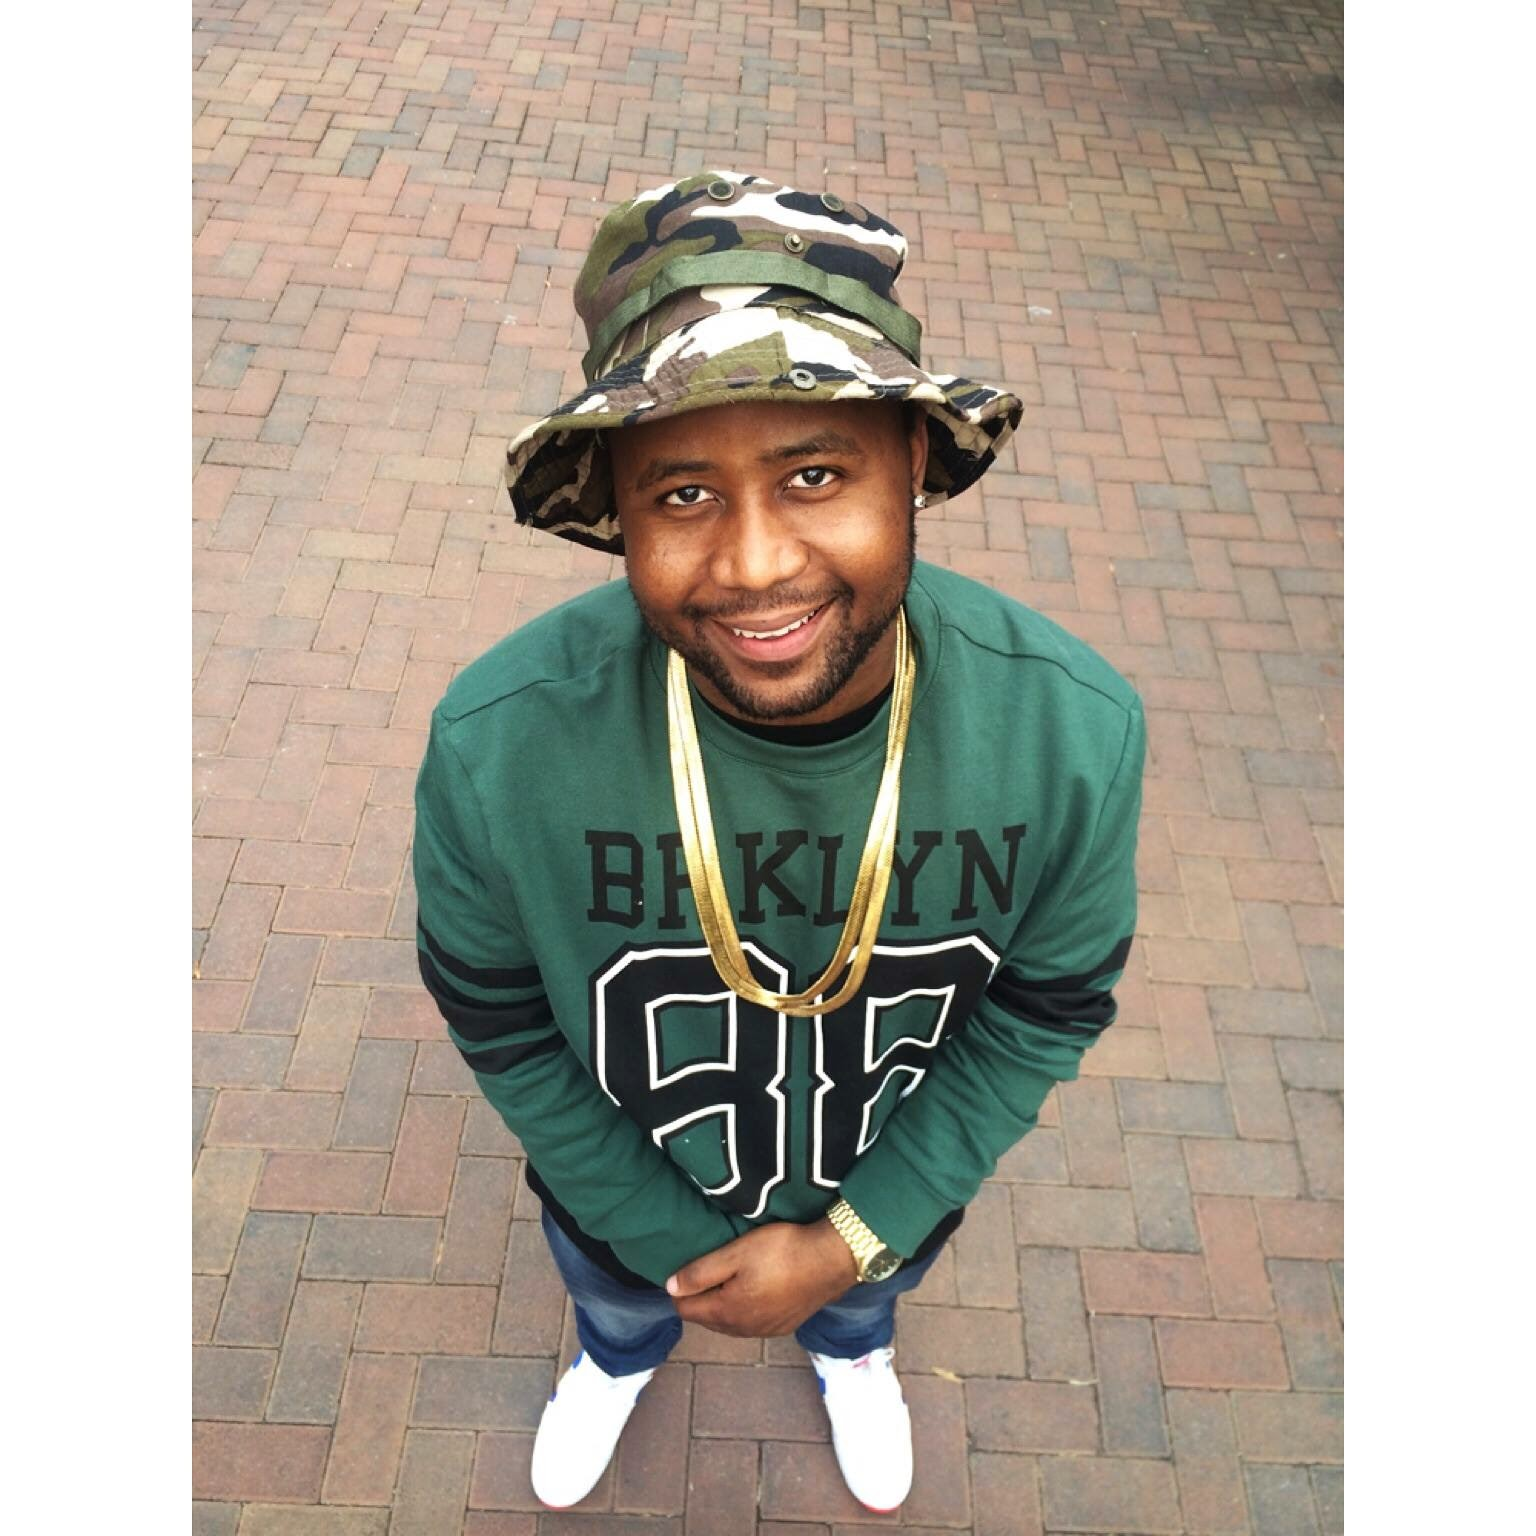 Cassper Nyovest Wins New Comer Awards Of The Year At The XXI